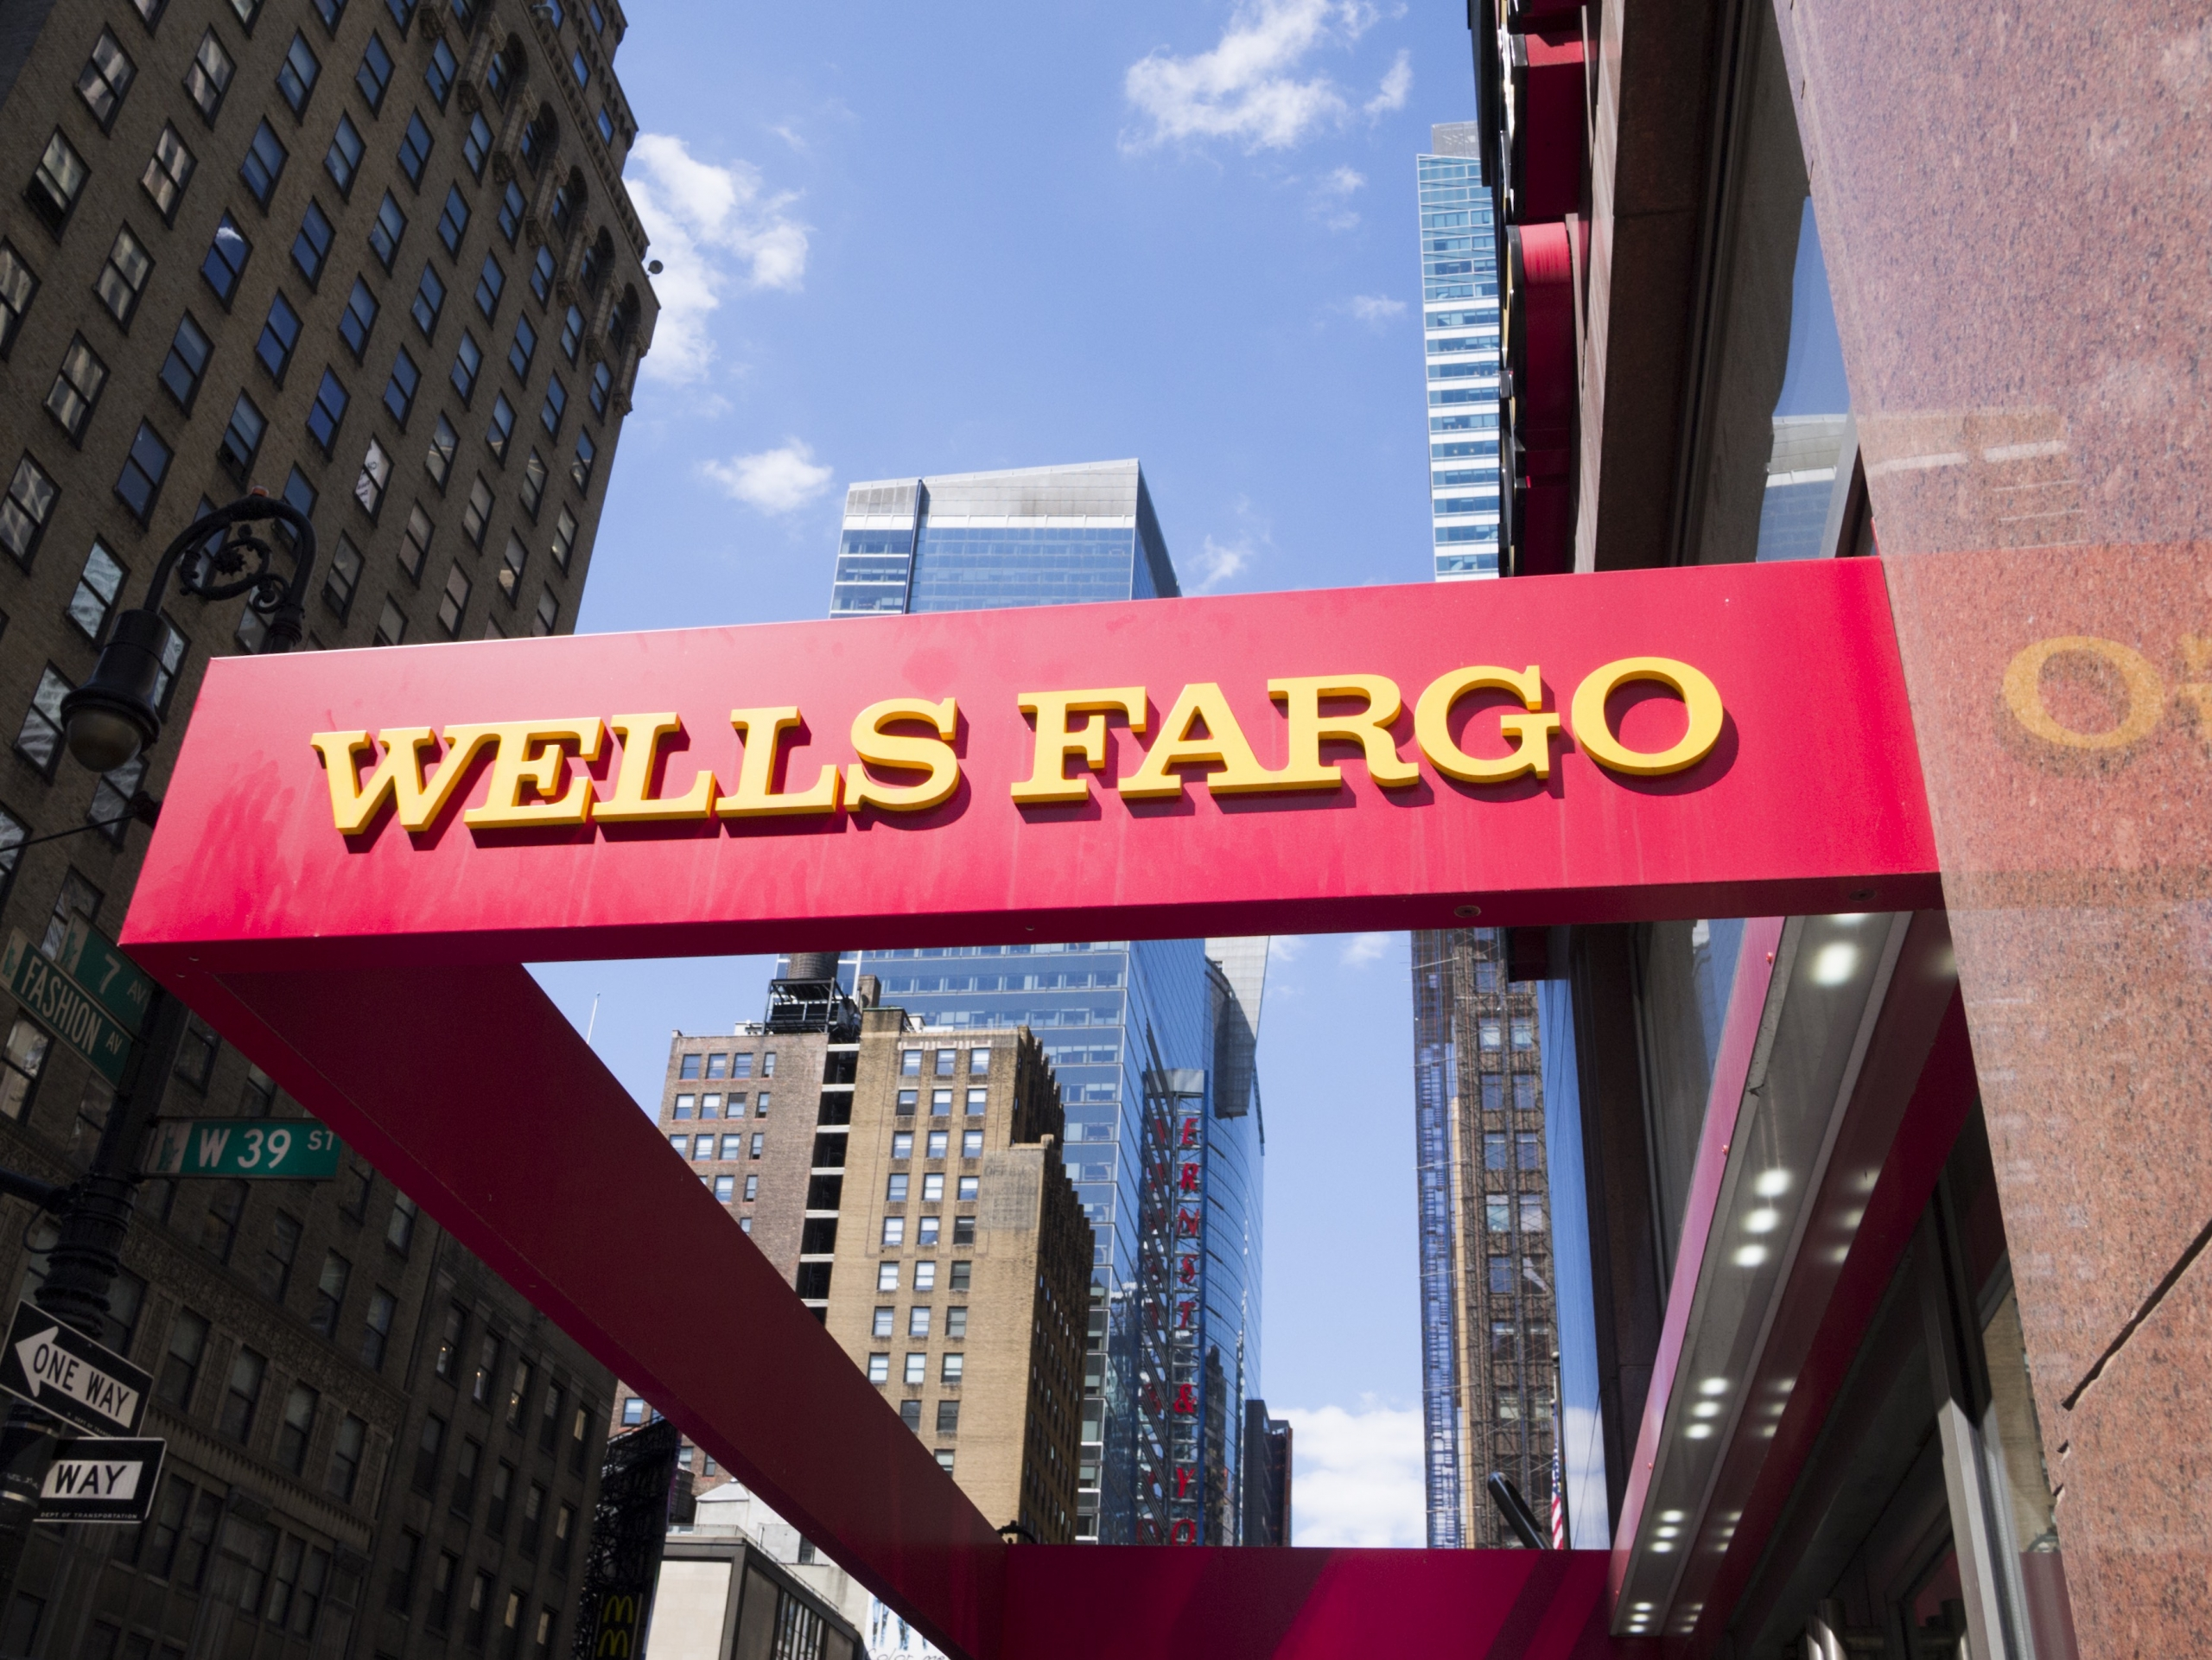 wells fargo i want to buy cryptocurrency